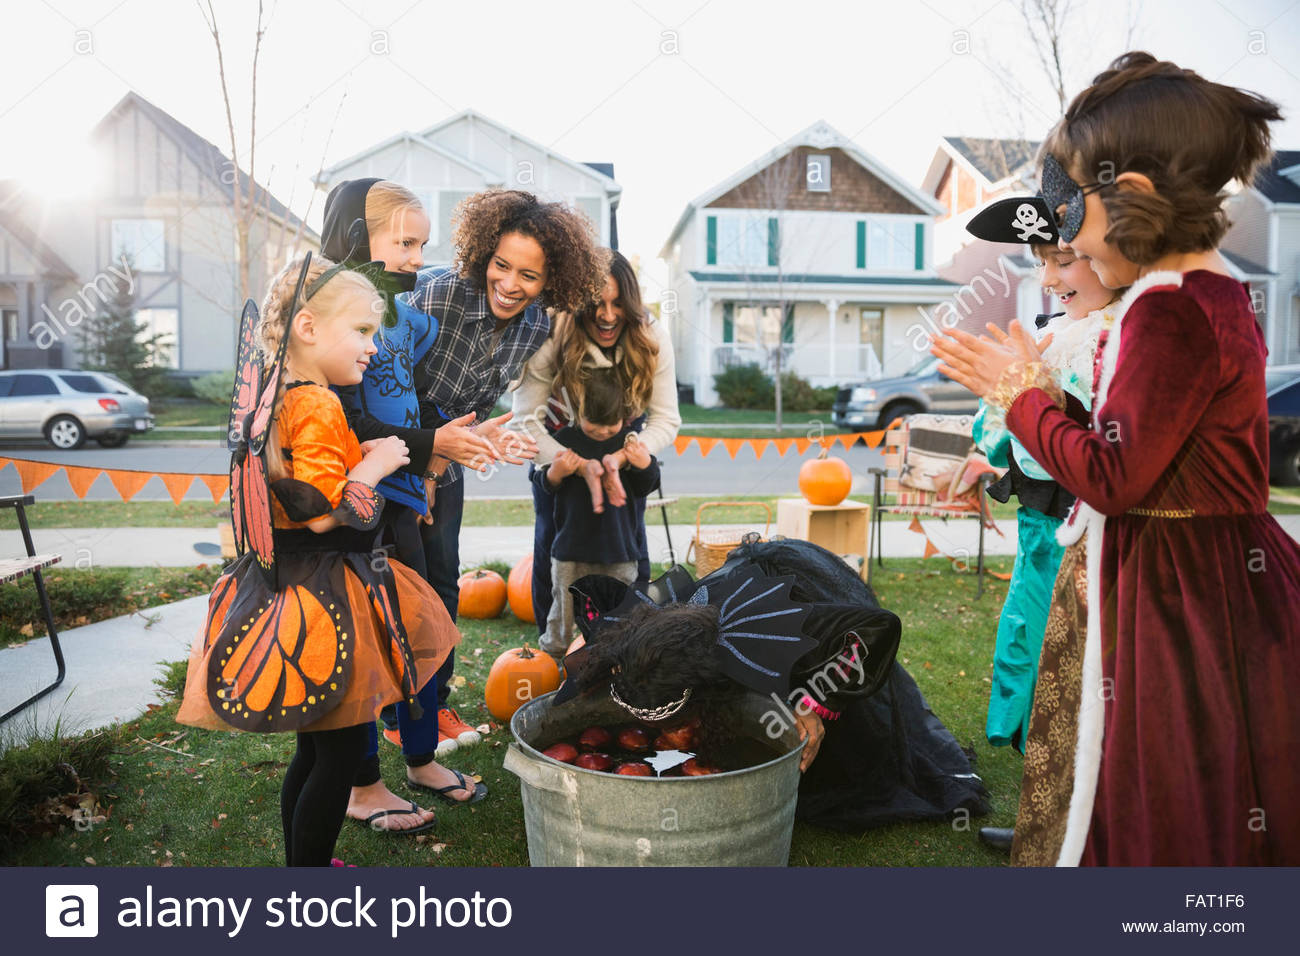 Kids in Halloween costumes bobbing for apples - Stock Image